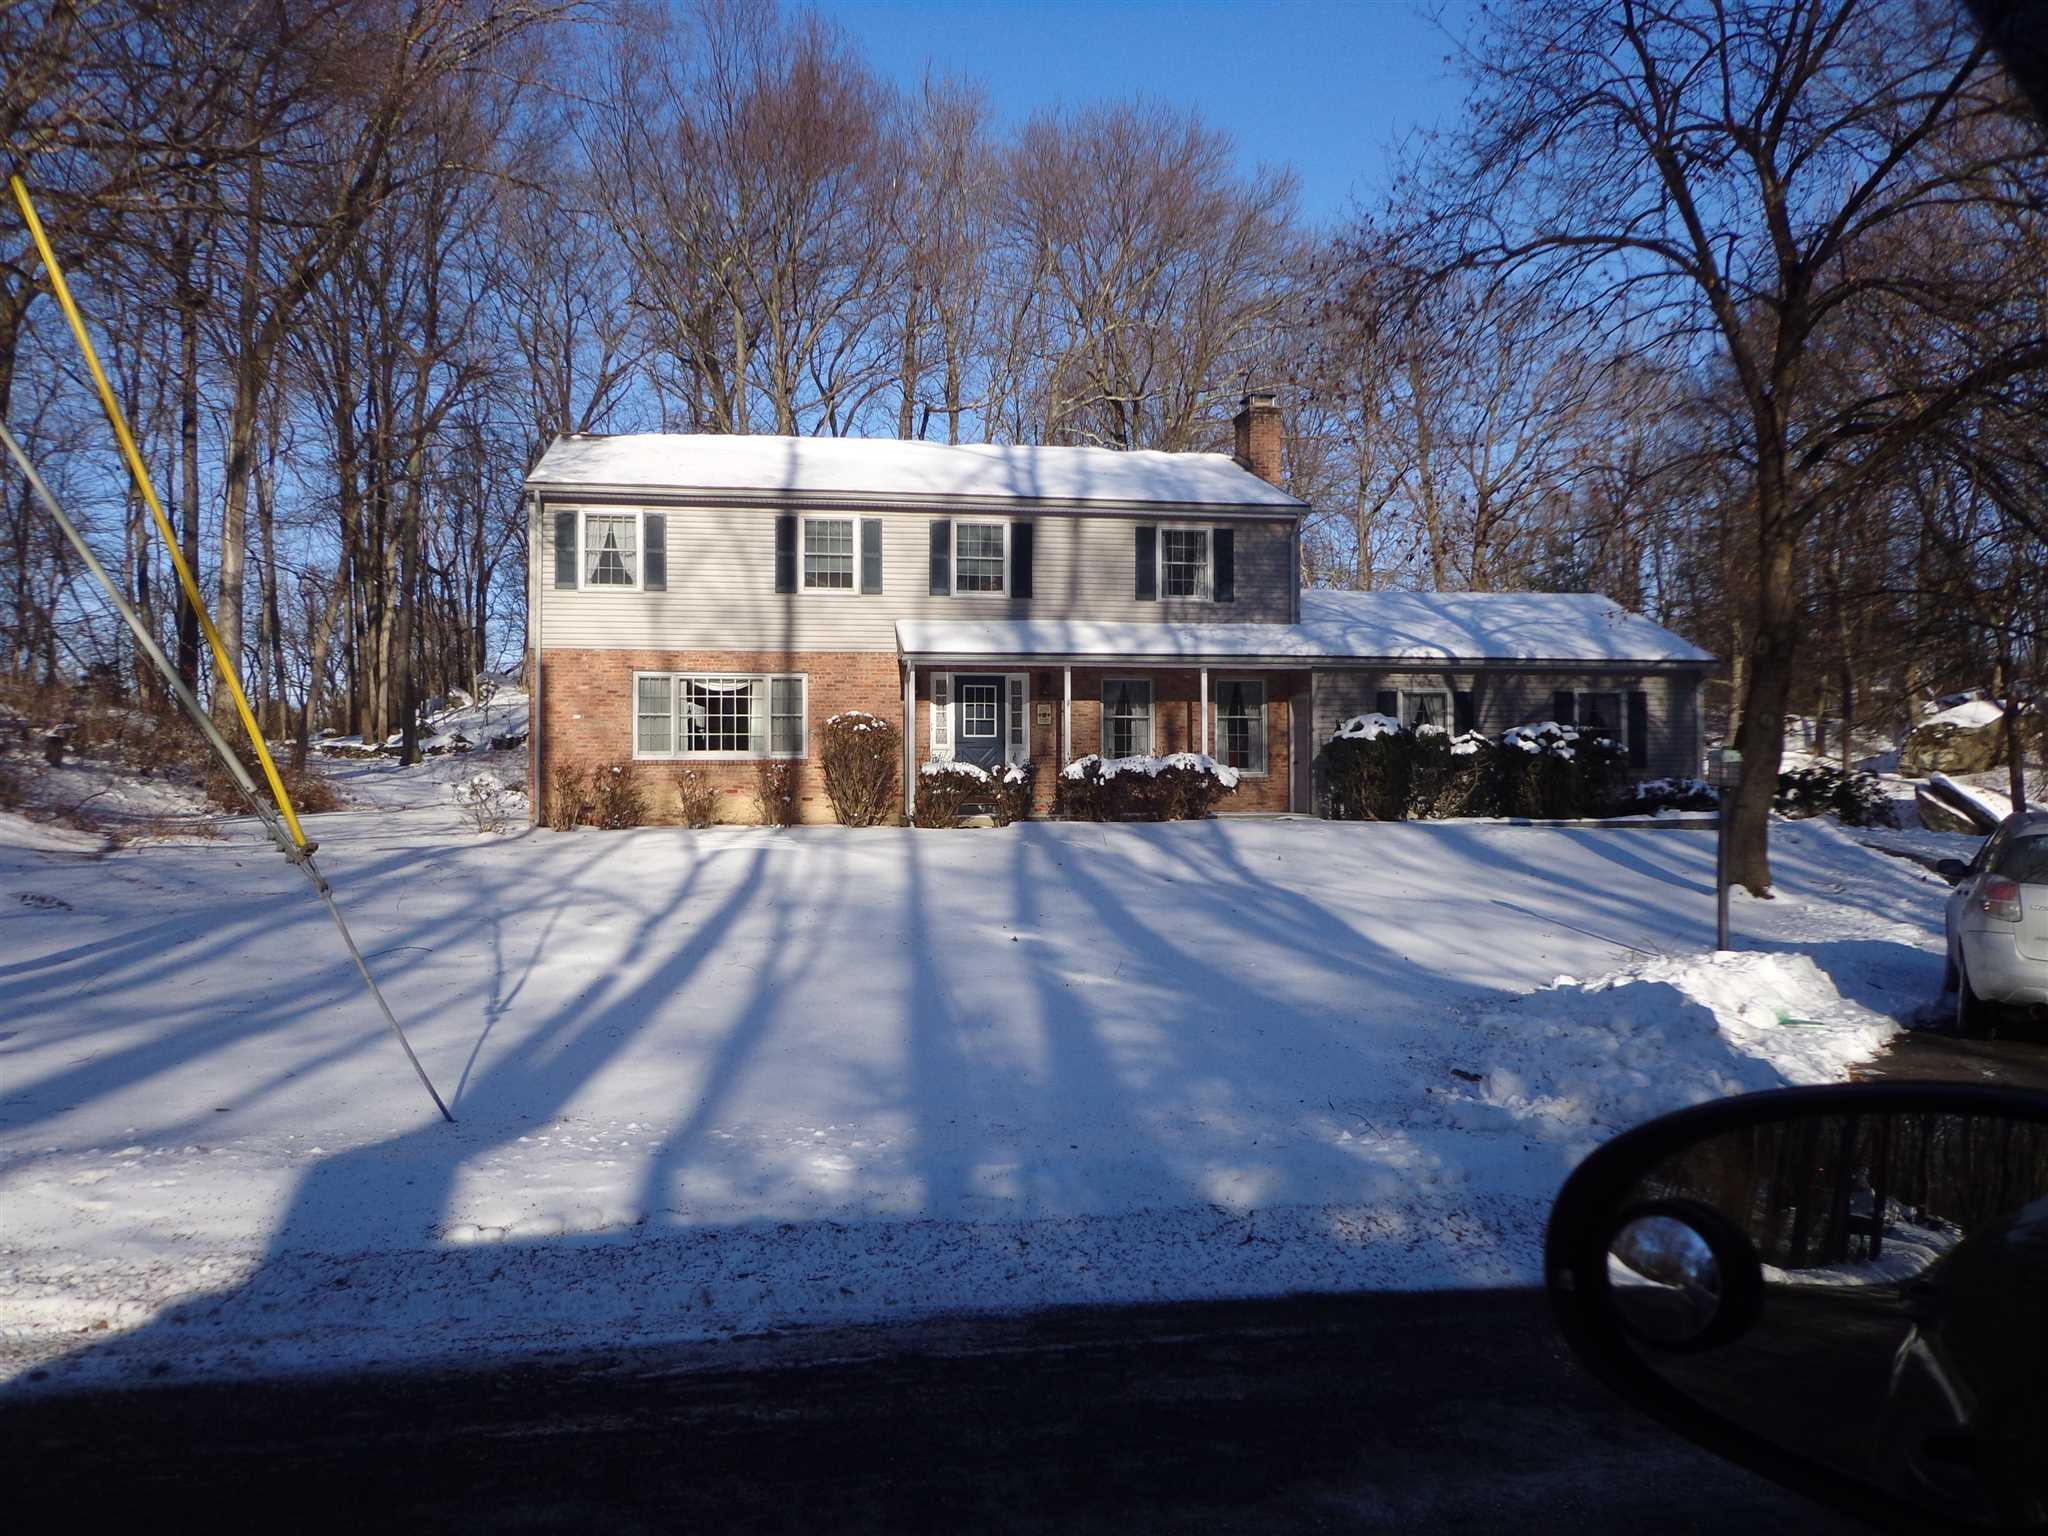 Single Family Home for Sale at 12 HOFFMAN WOODS 12 HOFFMAN WOODS Red Hook, New York 12557 United States